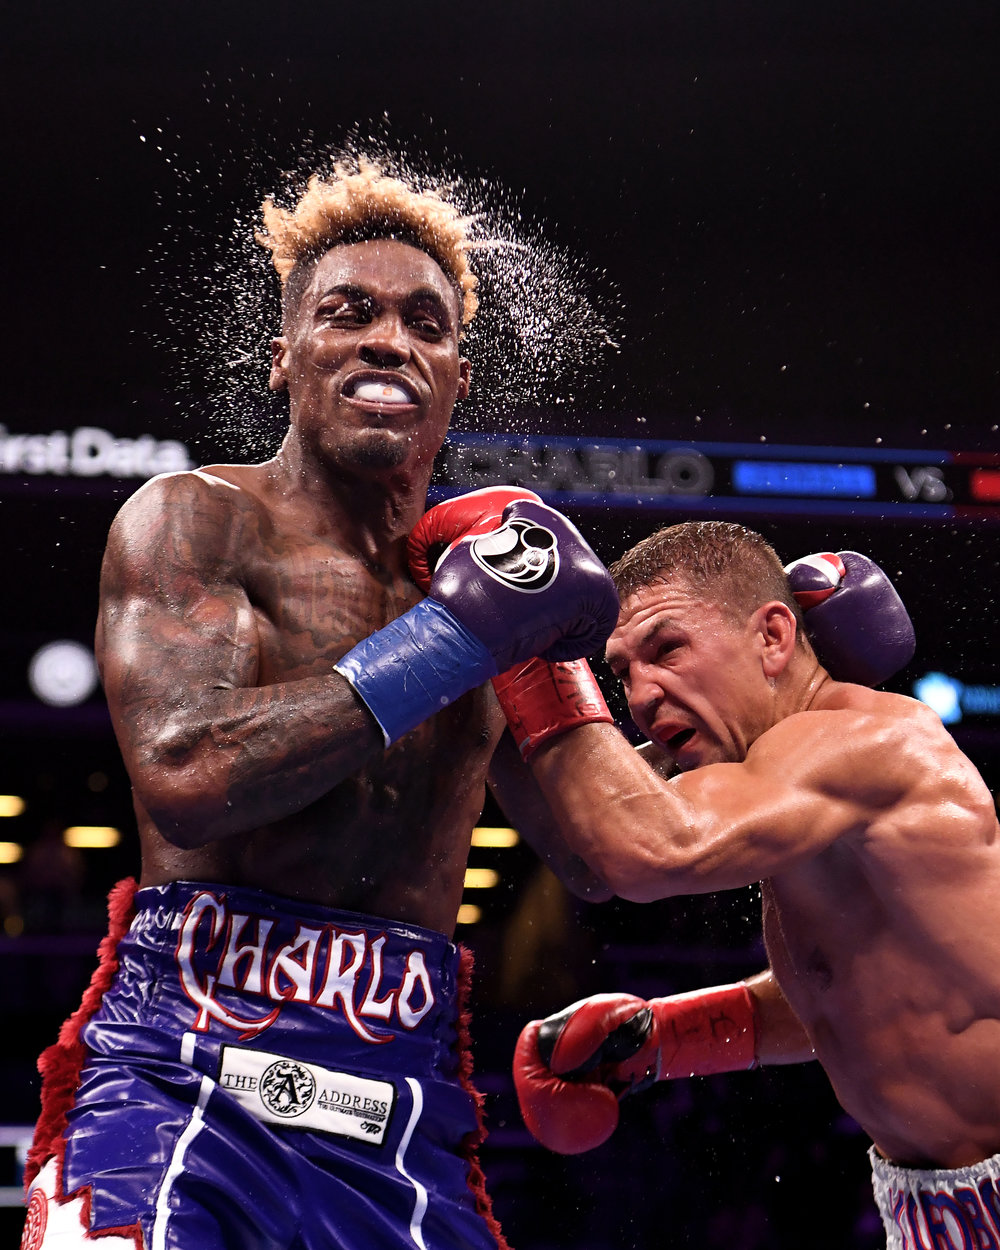 Matt Korobov punches Jermall Charlo during their WBC Interim Middleweight Championship bout at Barclays Center on December 22, 2018 in the Brooklyn borough of New York City.